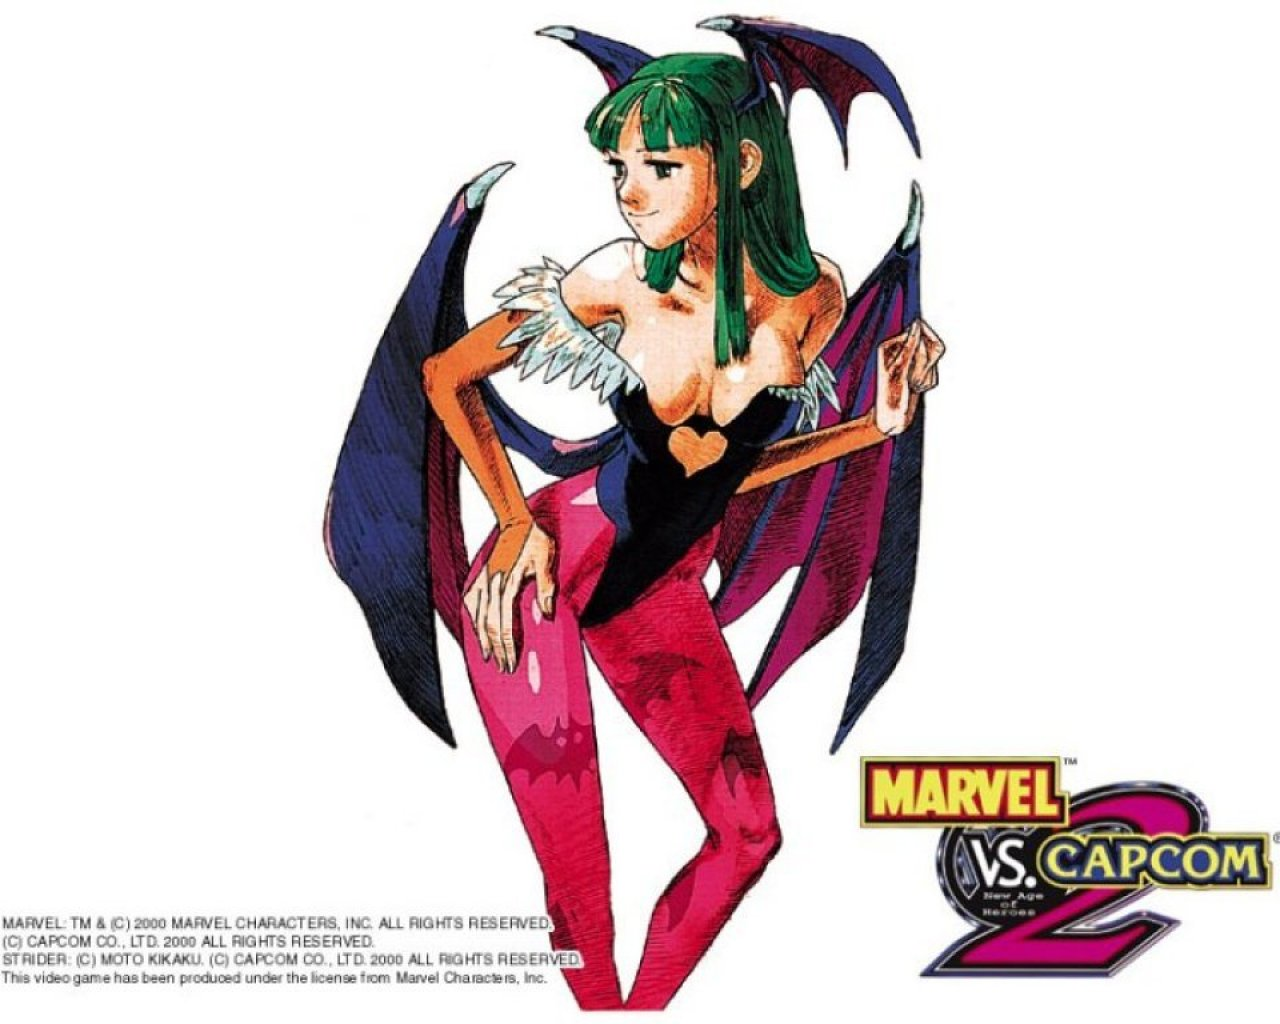 Capcom Wallpapers - Marvel vs. Capcom Desktop Wallpapers in High Resolution